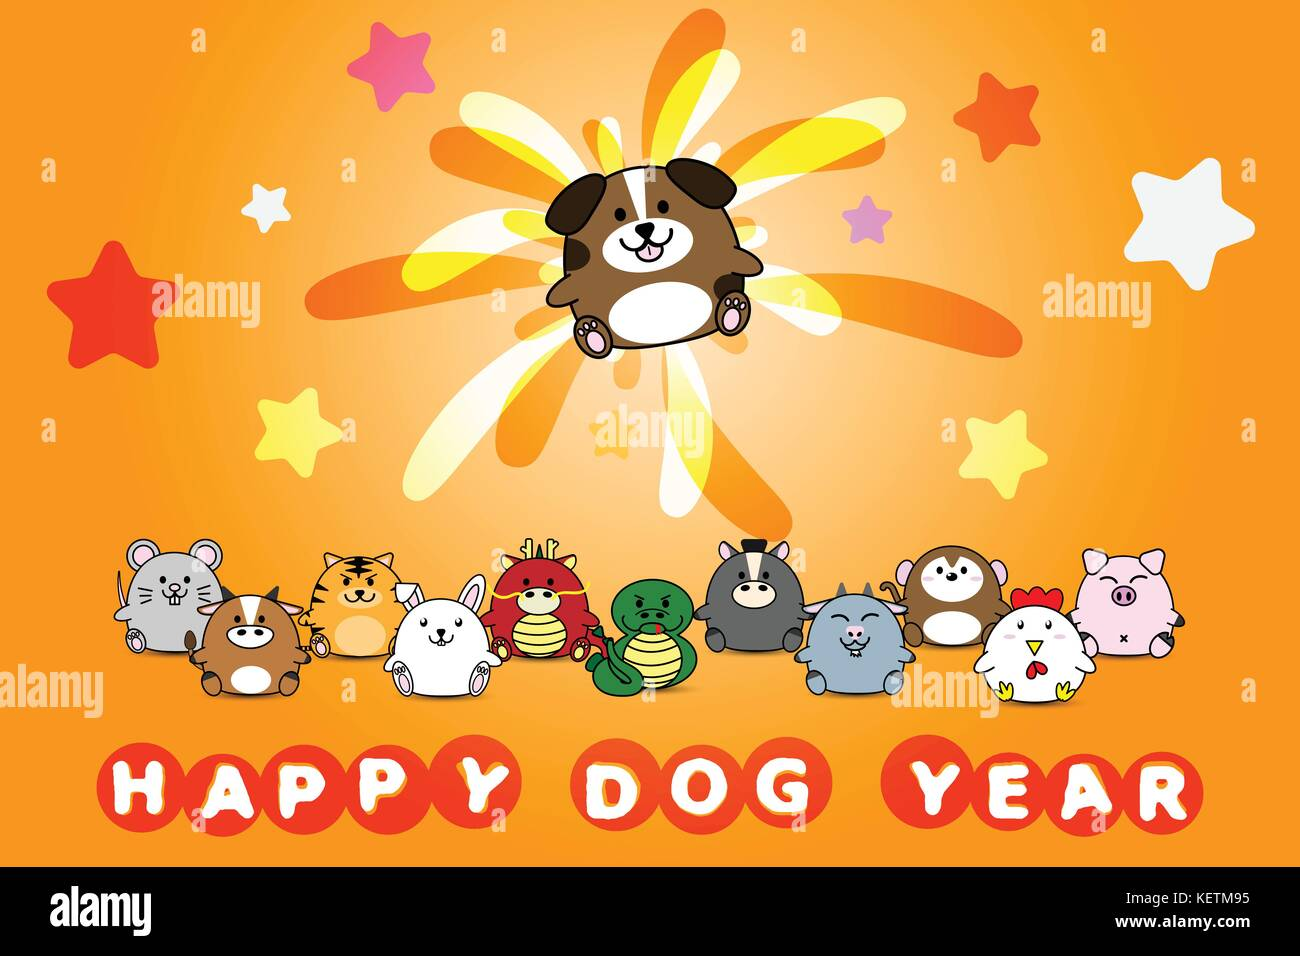 Chinese Zodiac Animal Dog Stock Photos Chinese Zodiac Animal Dog